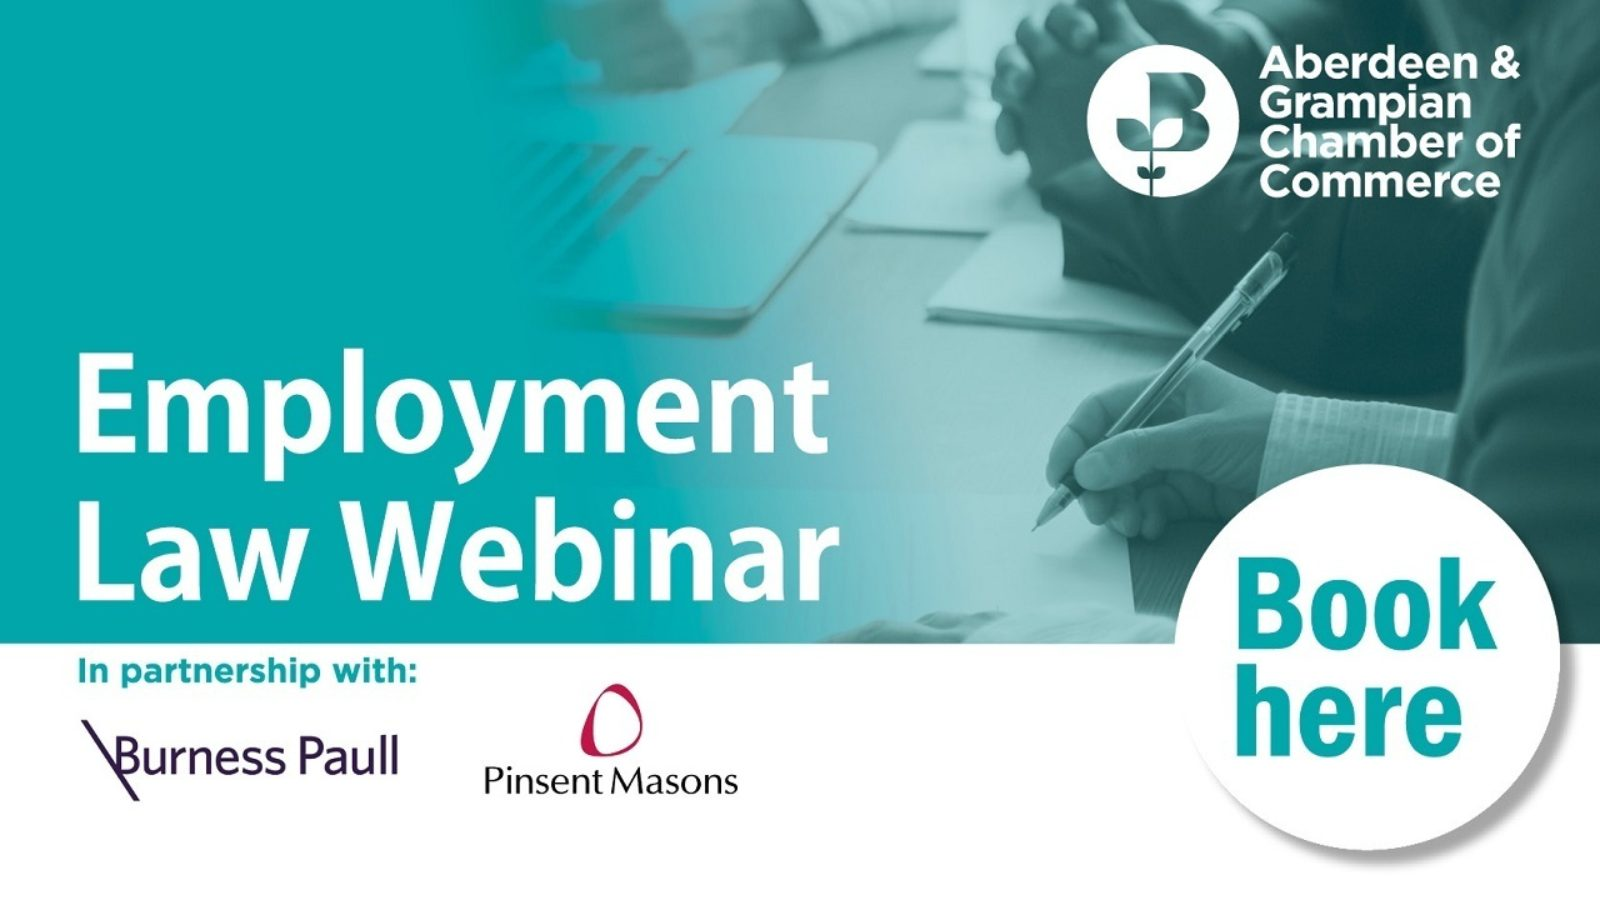 Scotland's leading employment law advisers Burness Paull LLP and Pinsent Masons LLP combine their resources to deliver a must-attend webinar